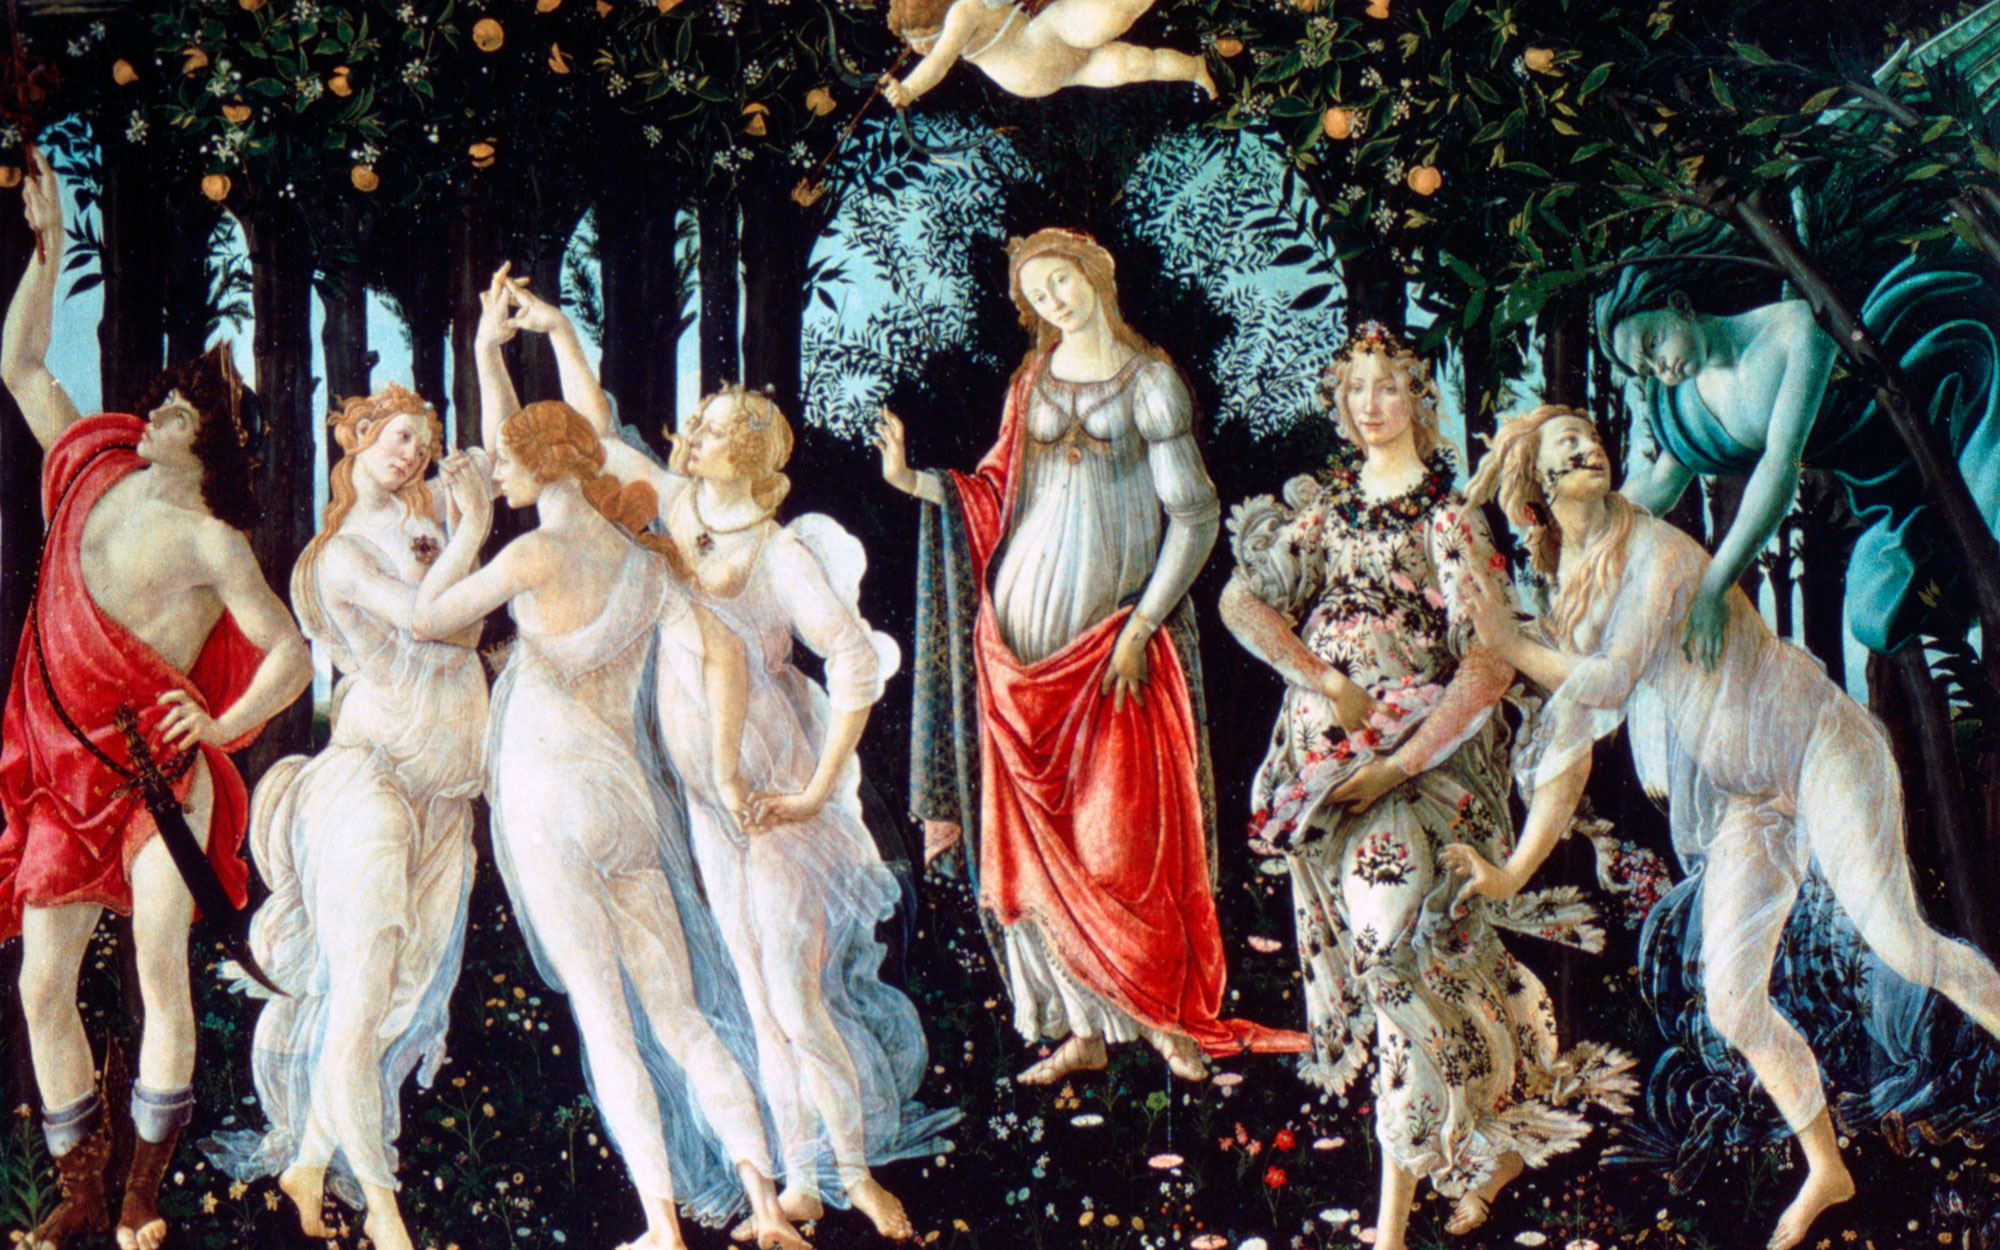 The science behind Botticelli's Primavera